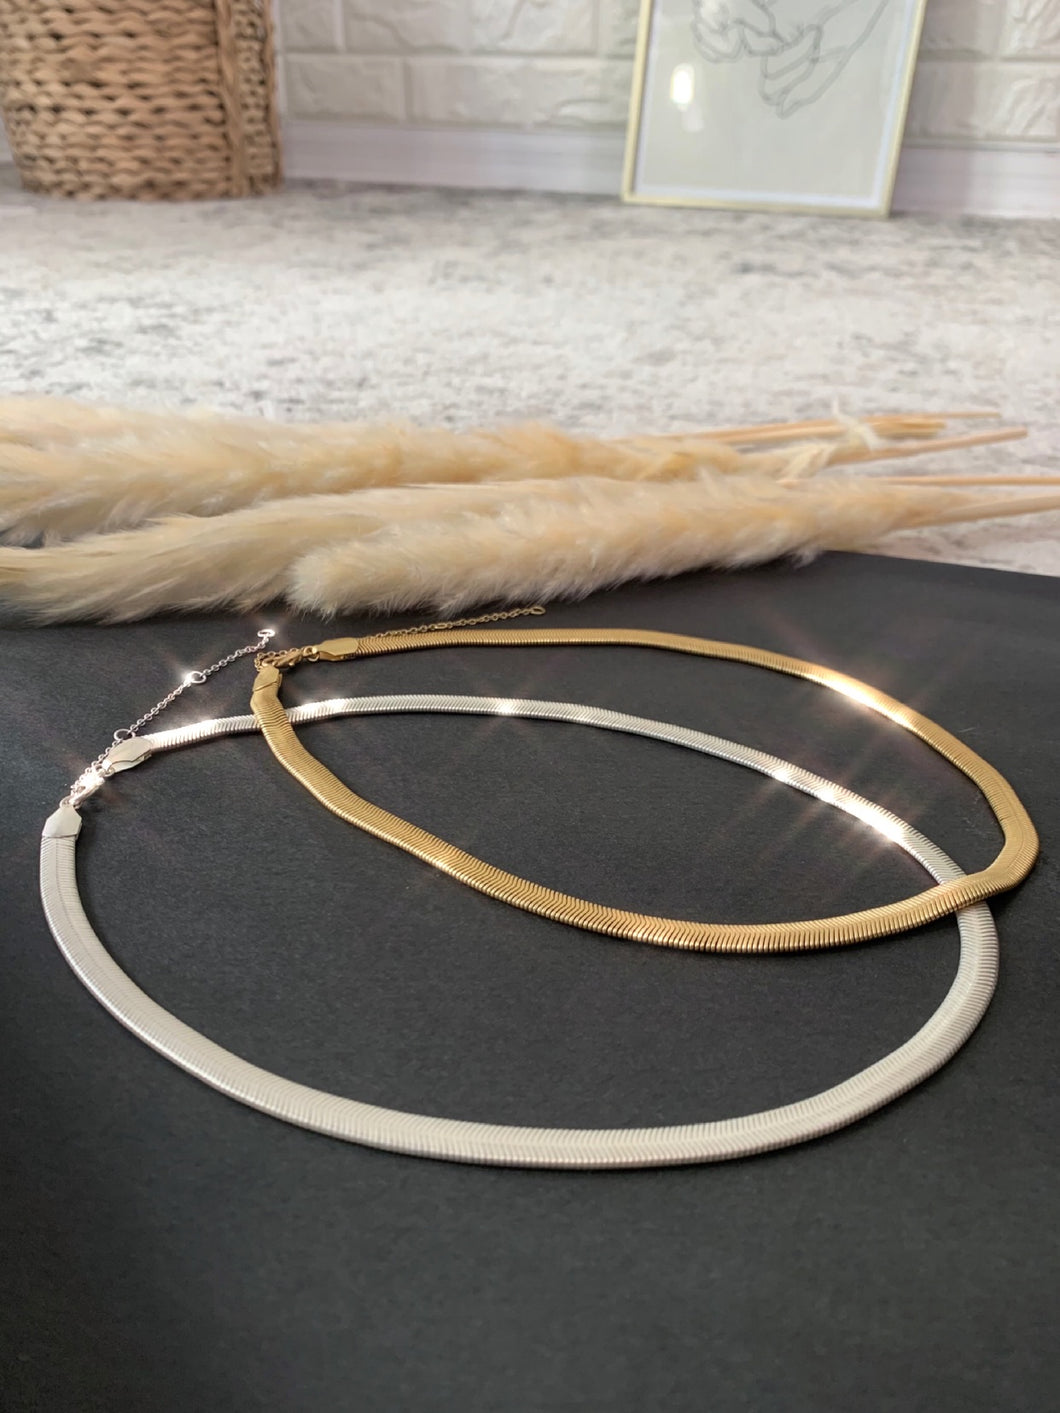 Thick Herringbone Necklace Gold or Silver, Free Shipping!